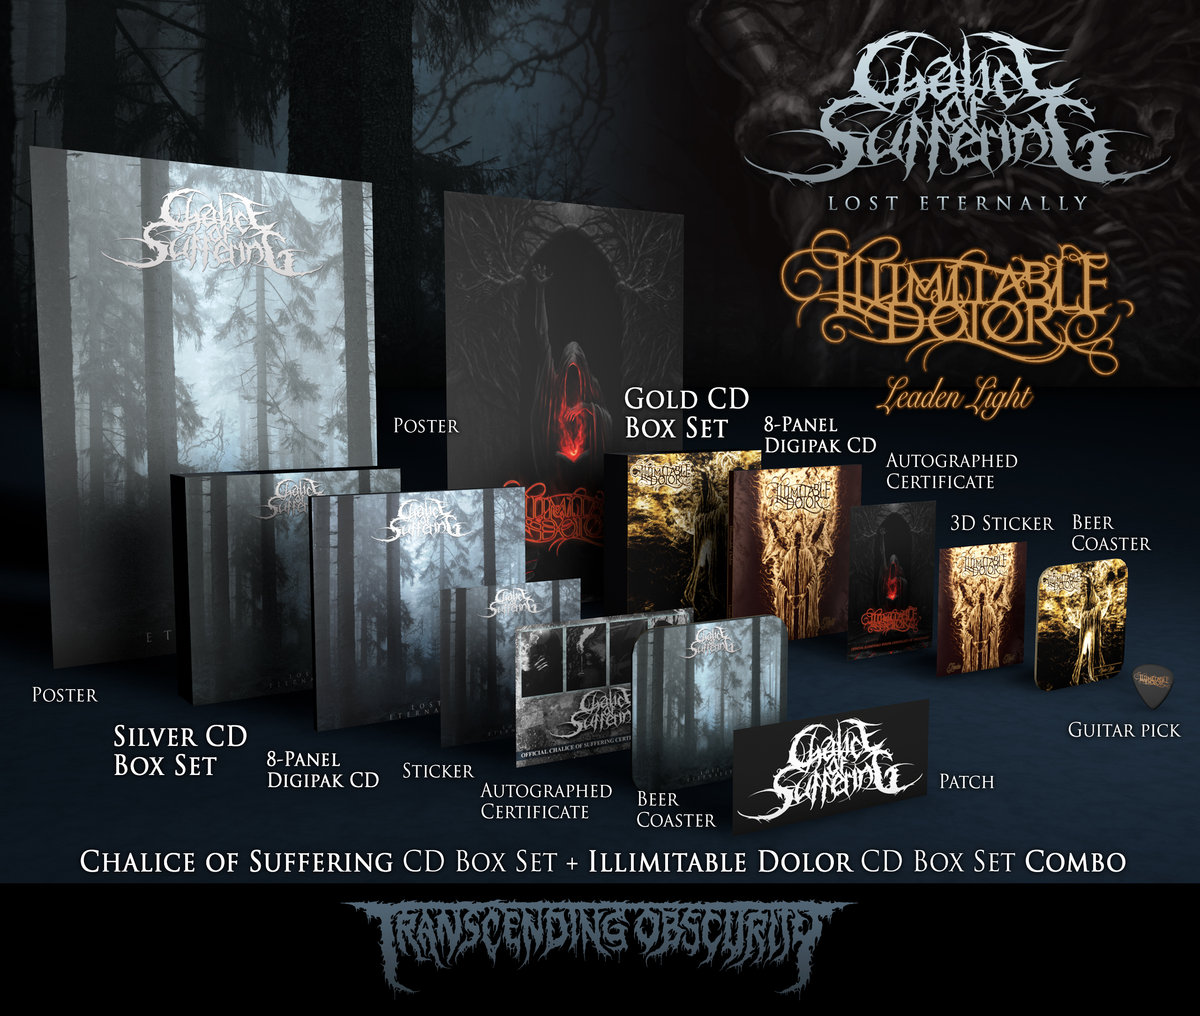 CHALICE OF SUFFERING + ILLIMITABLE DOLOR Double Box Set Combo -  TRANSCENDING OBSCURITY